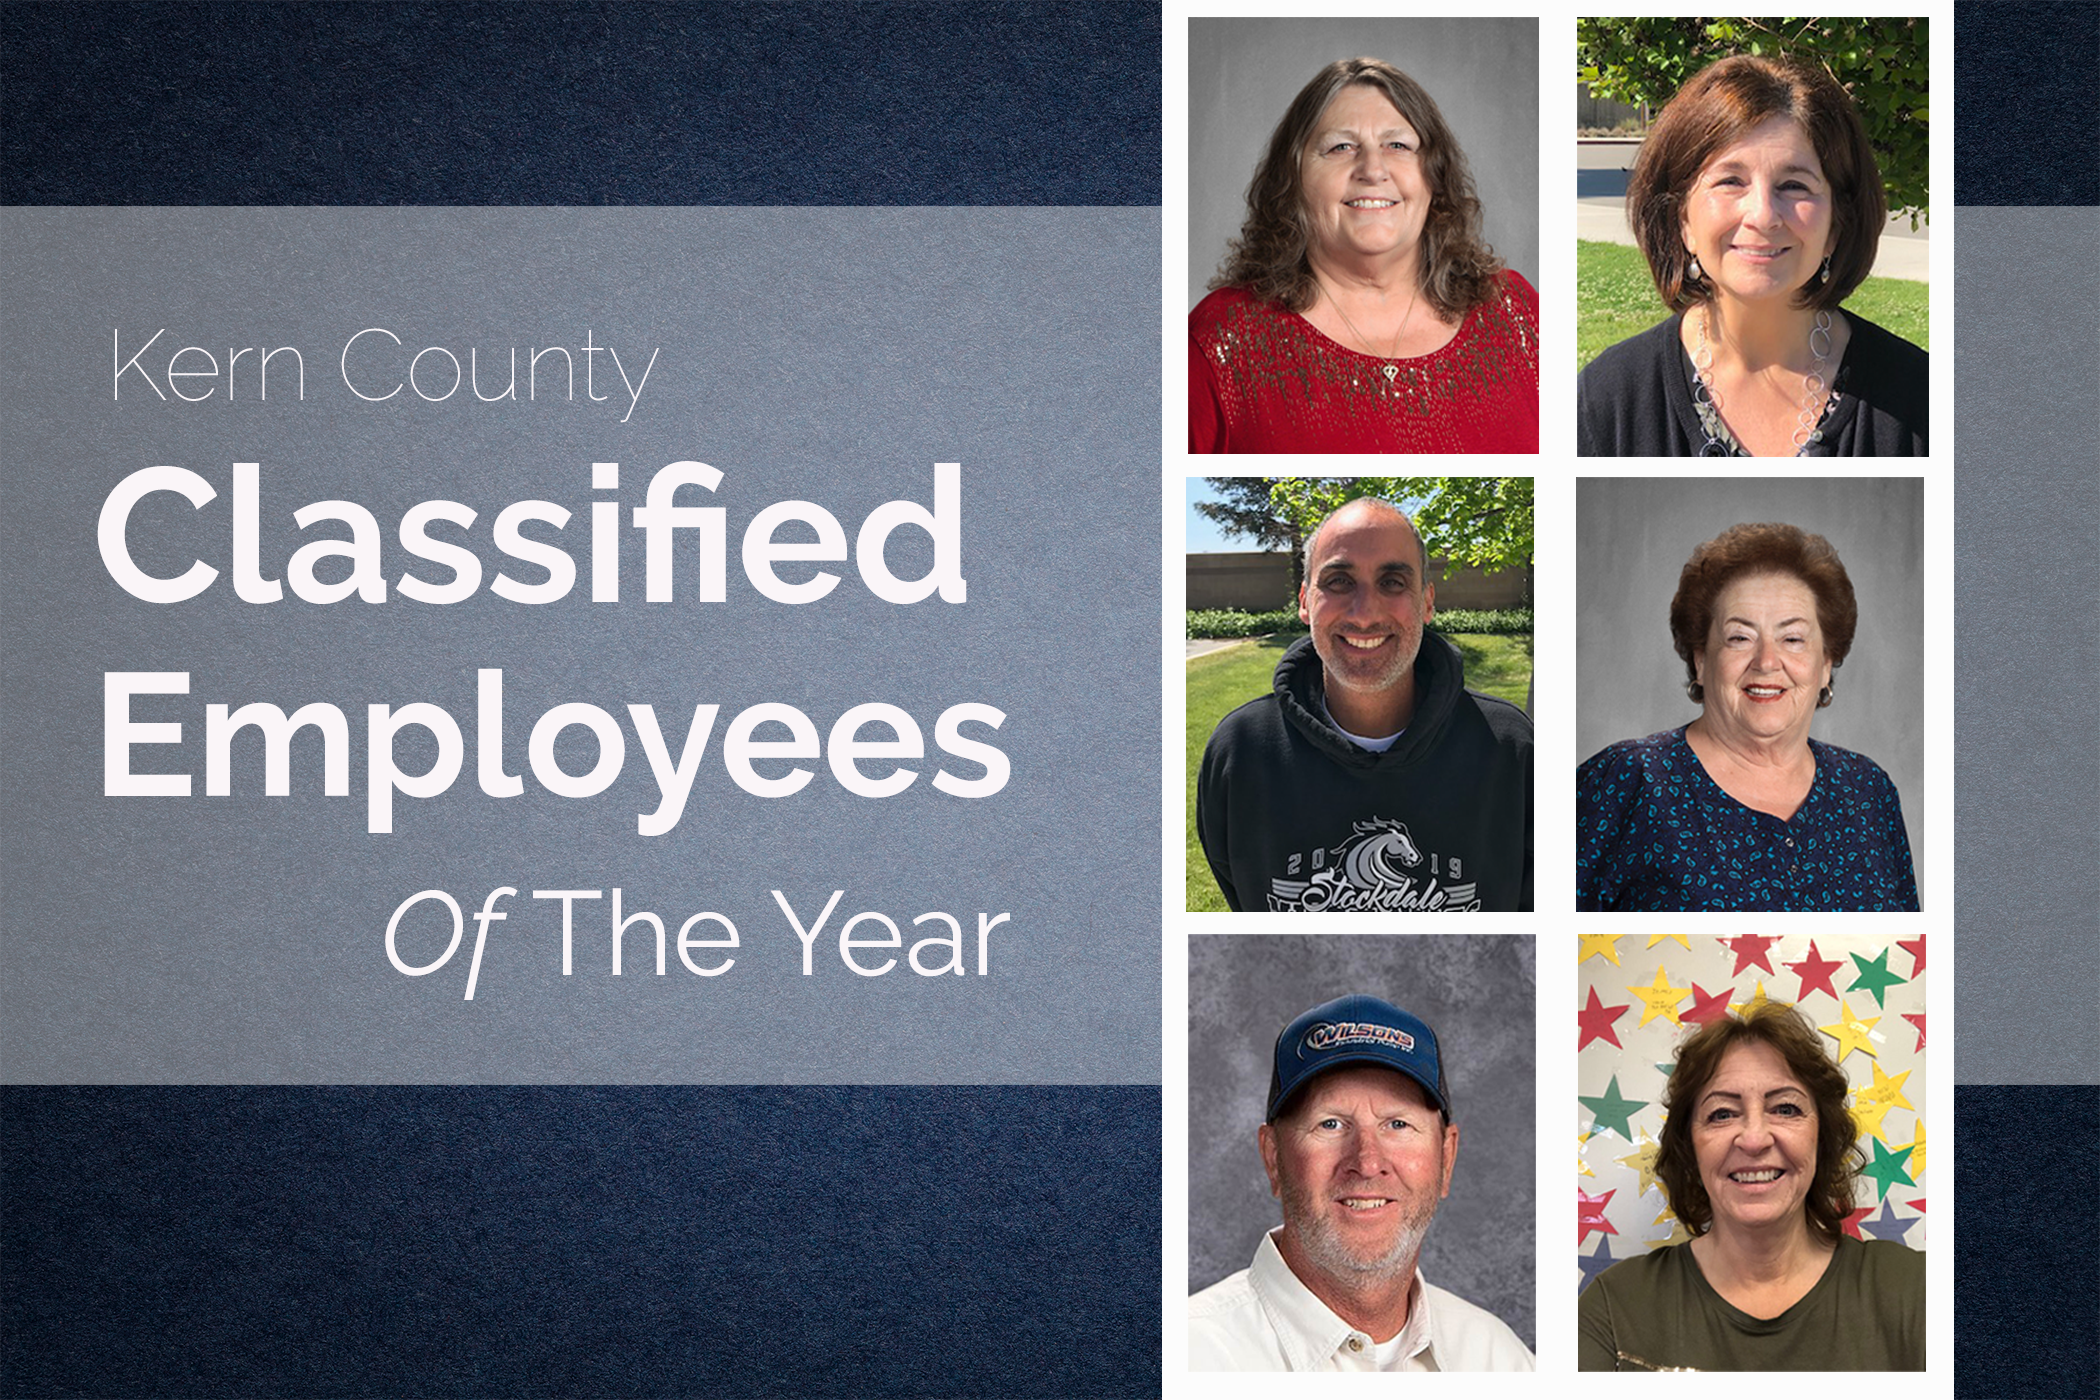 Kern County Classified Employees Of The Year Named